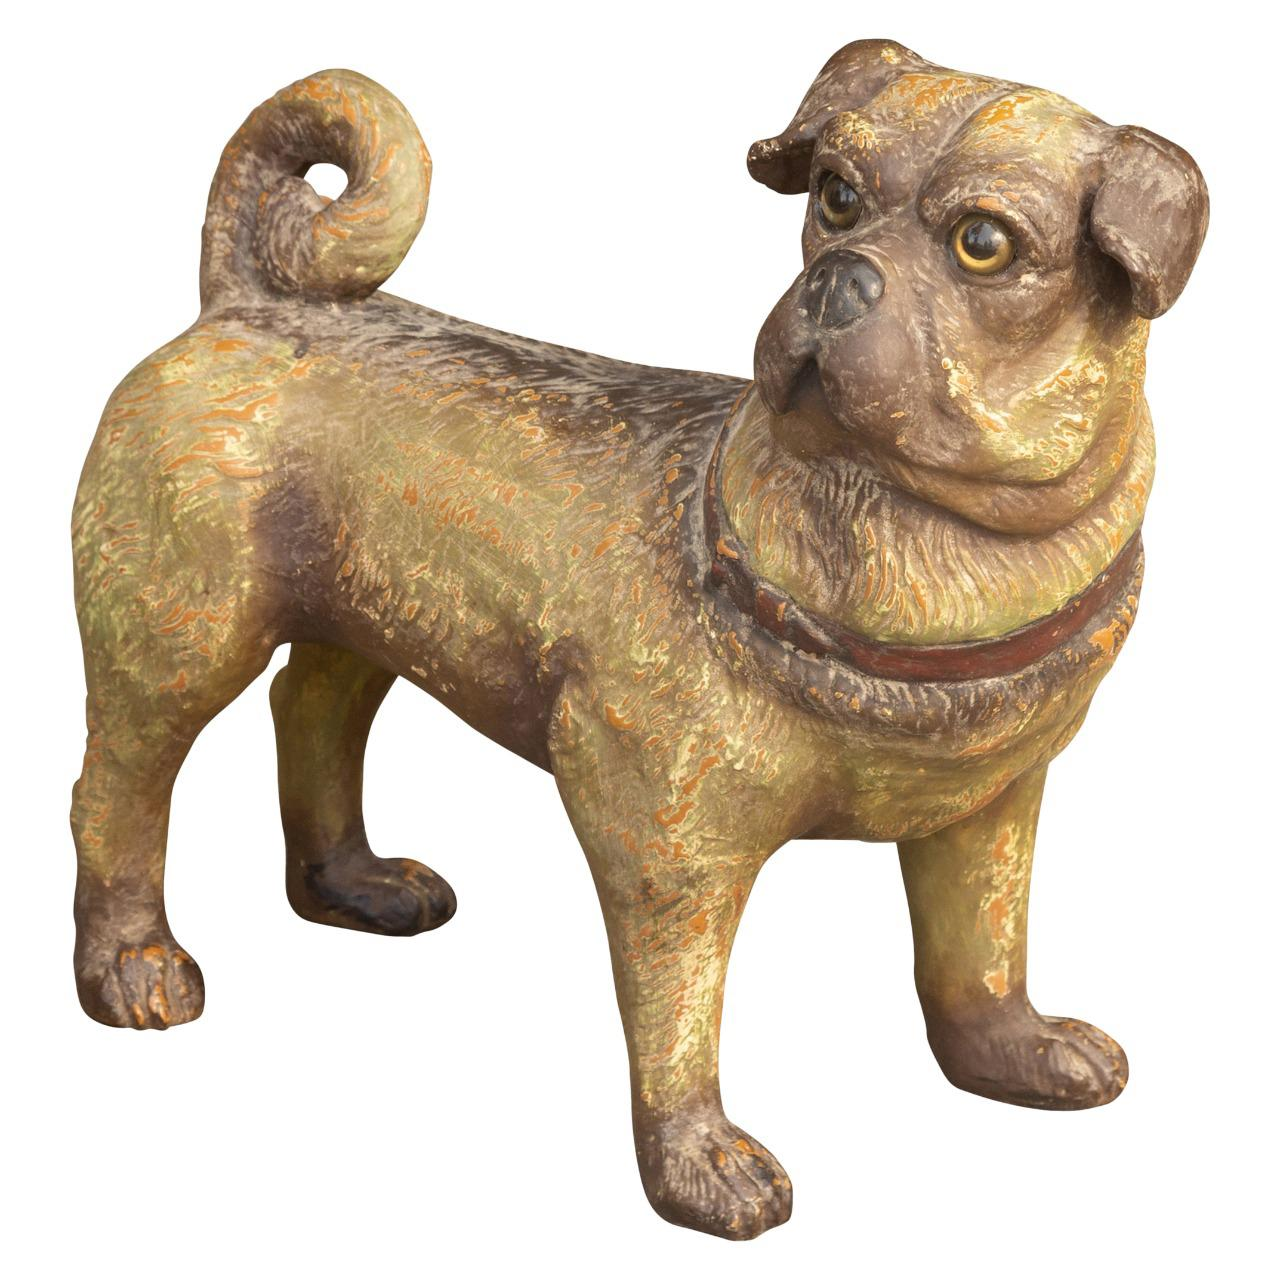 Vintage English Standing Pug Composition Sculpture with Glass Eyes and Collar